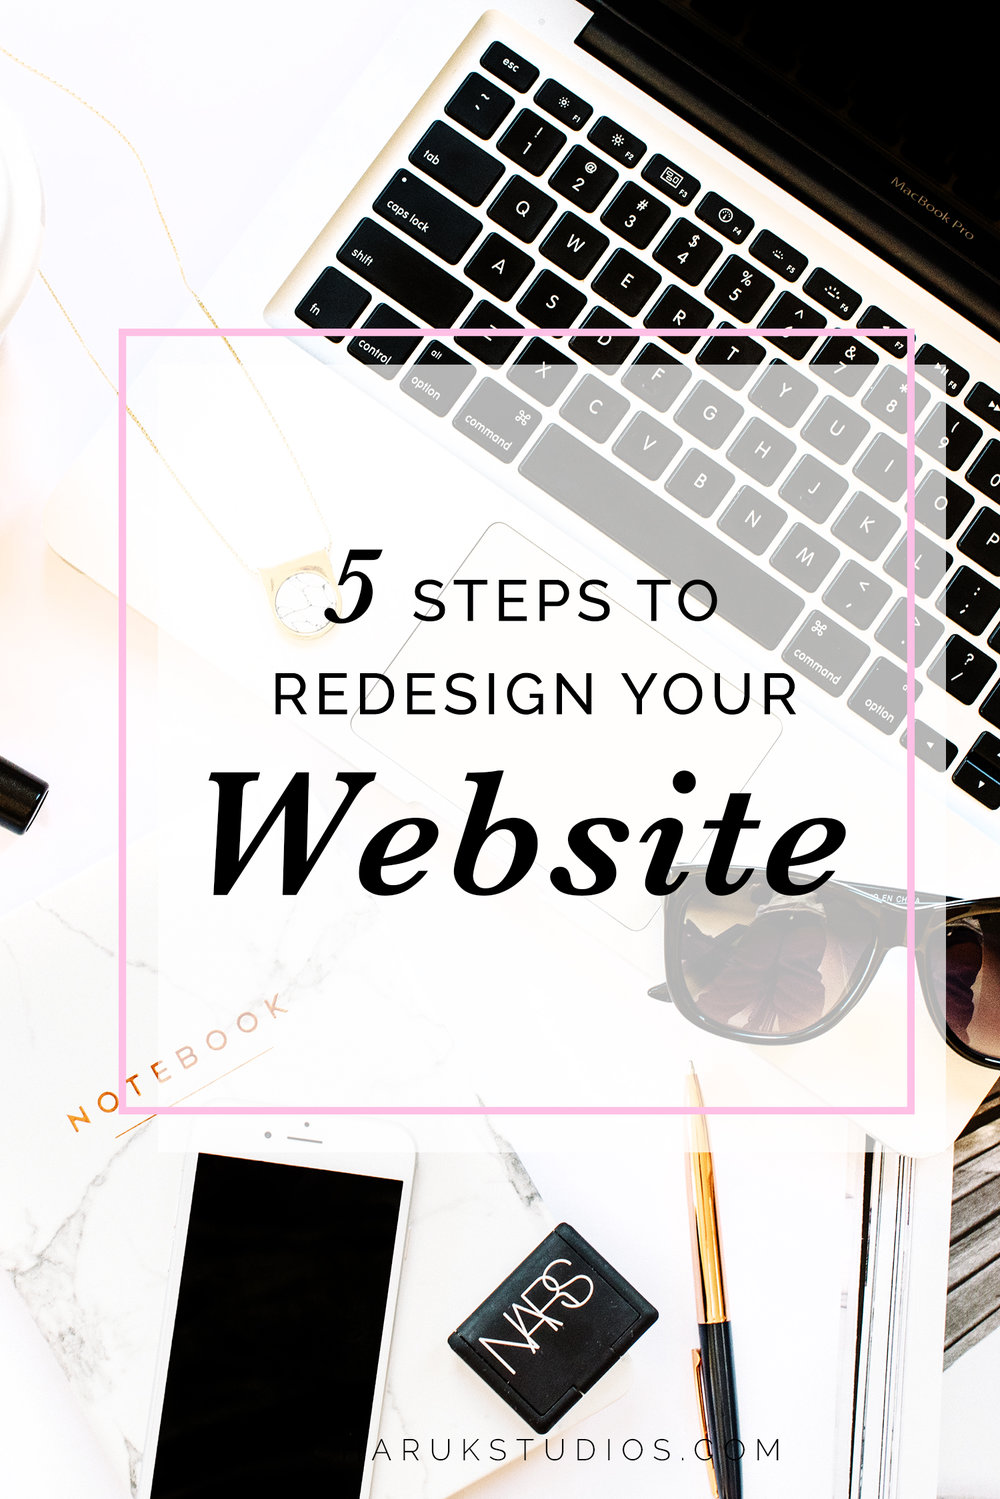 5 Steps to Redesign Your Website by Charuk Studios